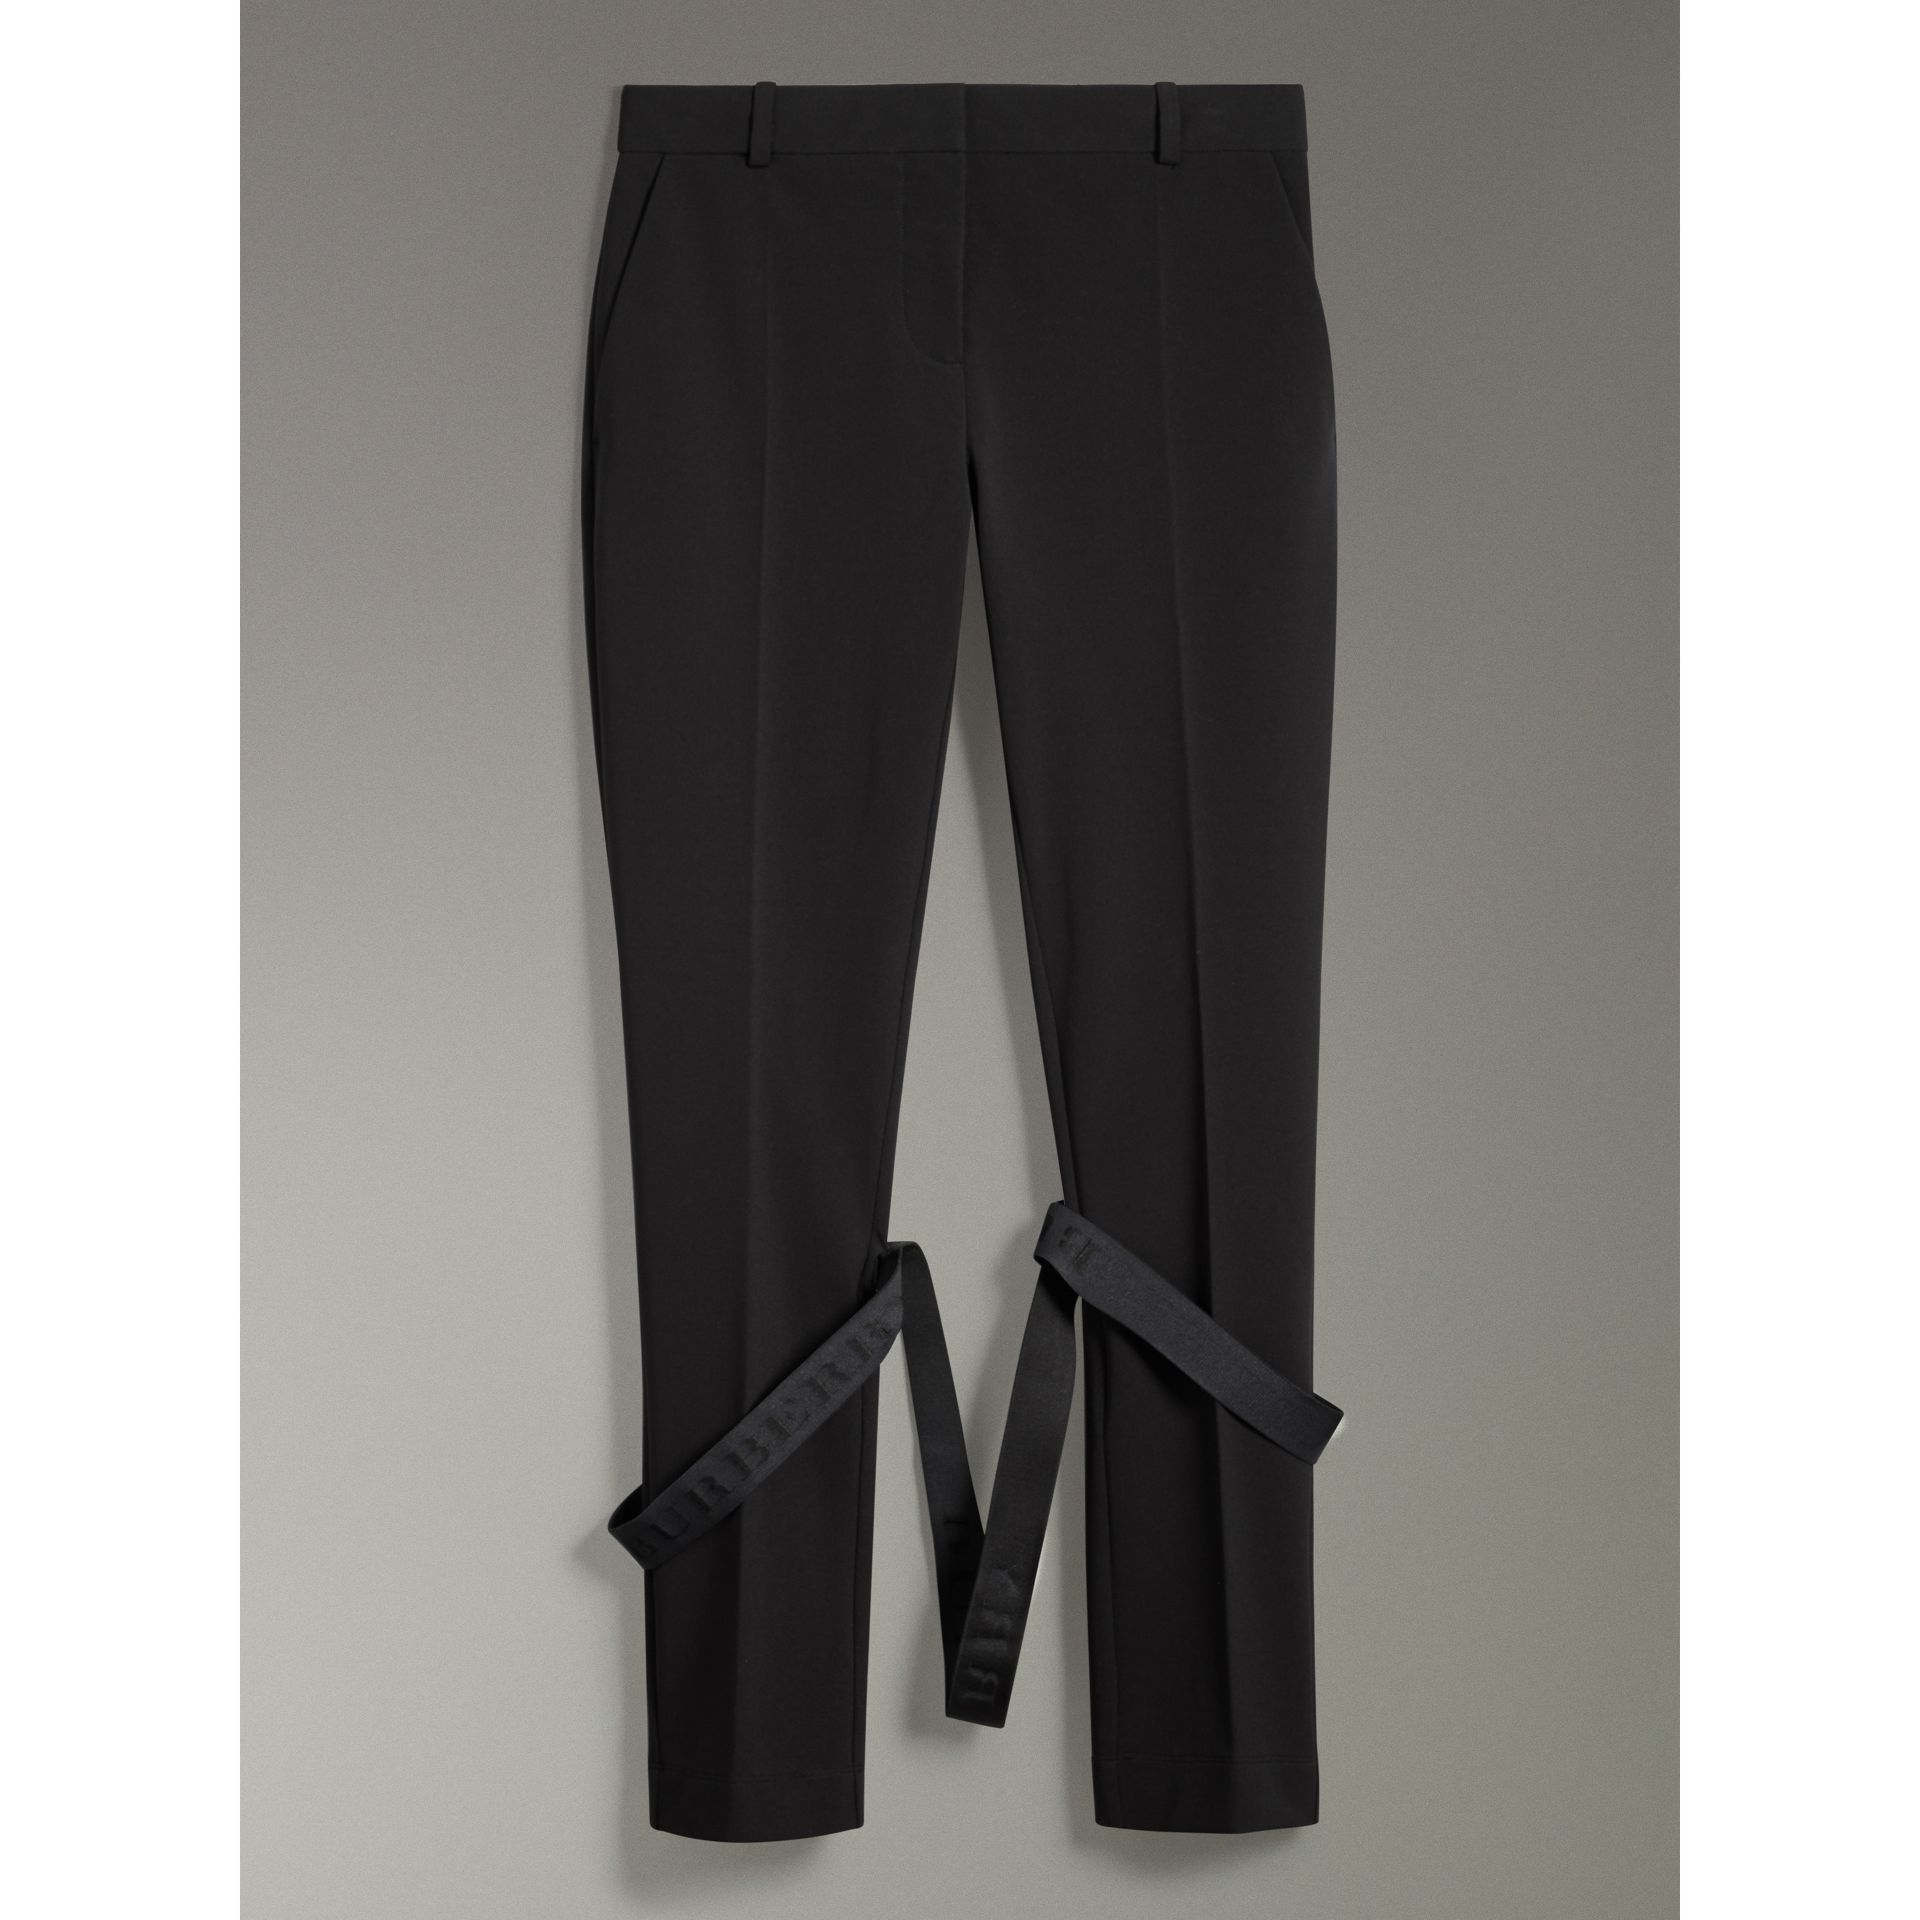 Strap Detail Jersey Tailored Trousers in Black - Women | Burberry - gallery image 3